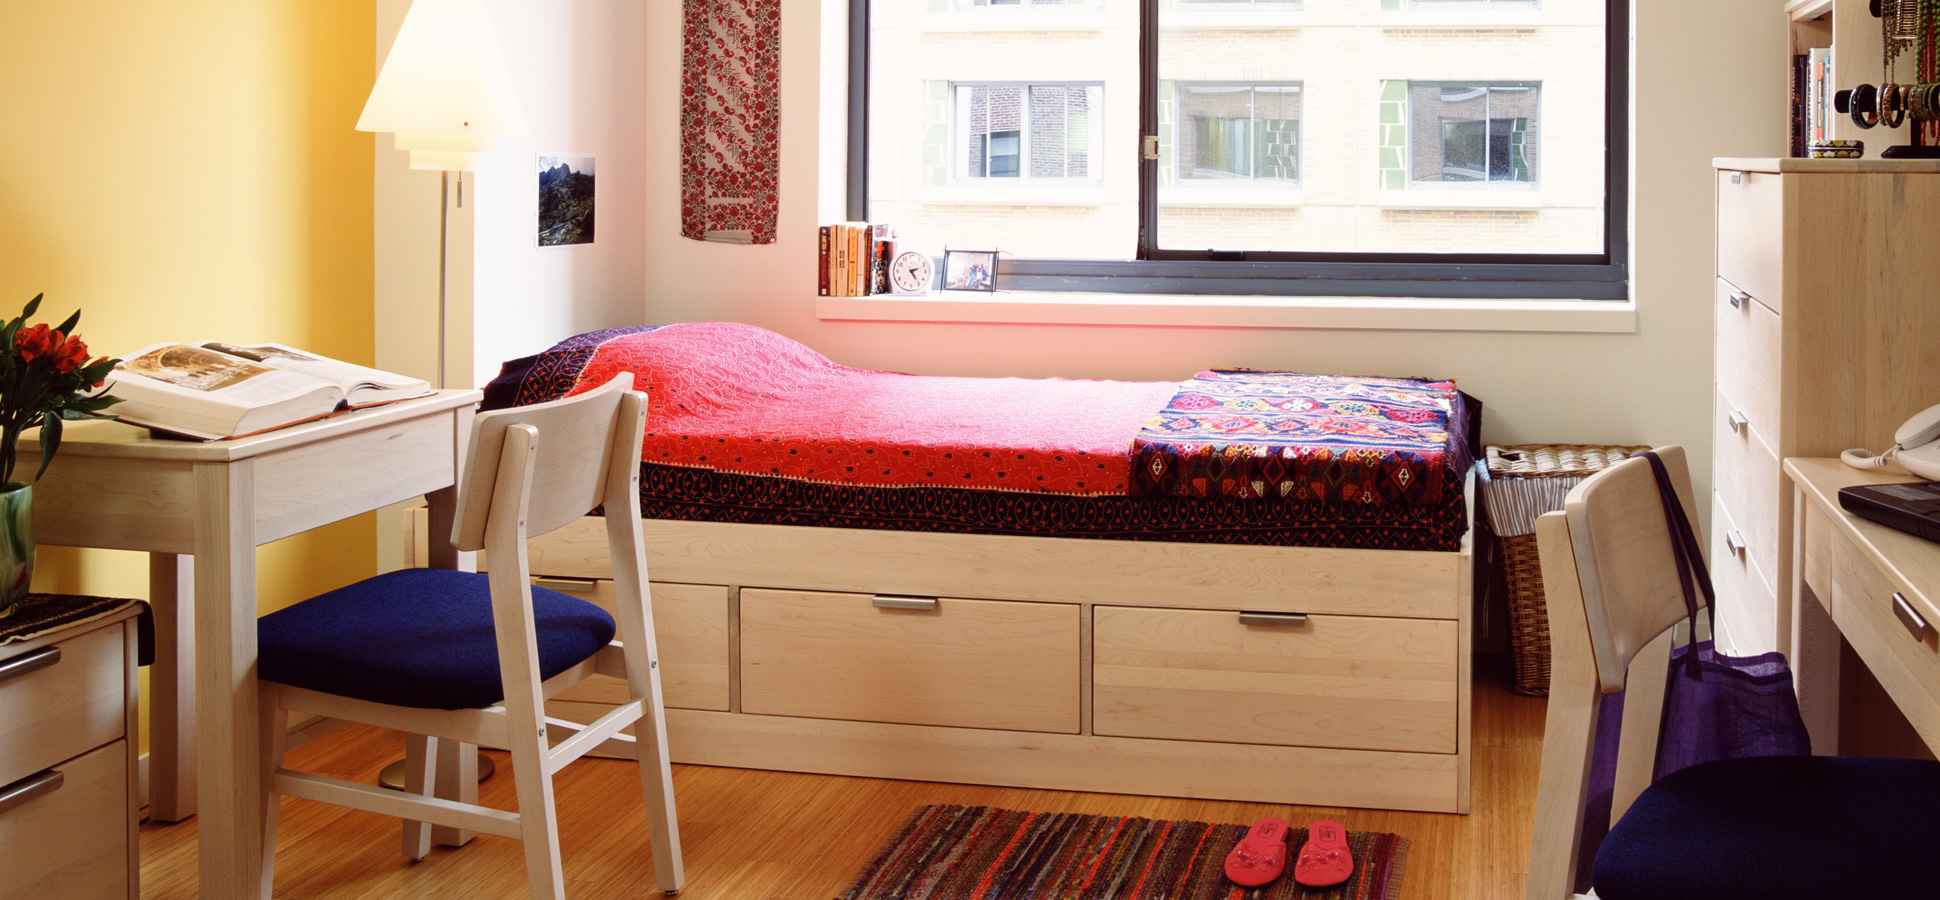 How to Solve a Billion-Dollar Problem From Your Dorm Room